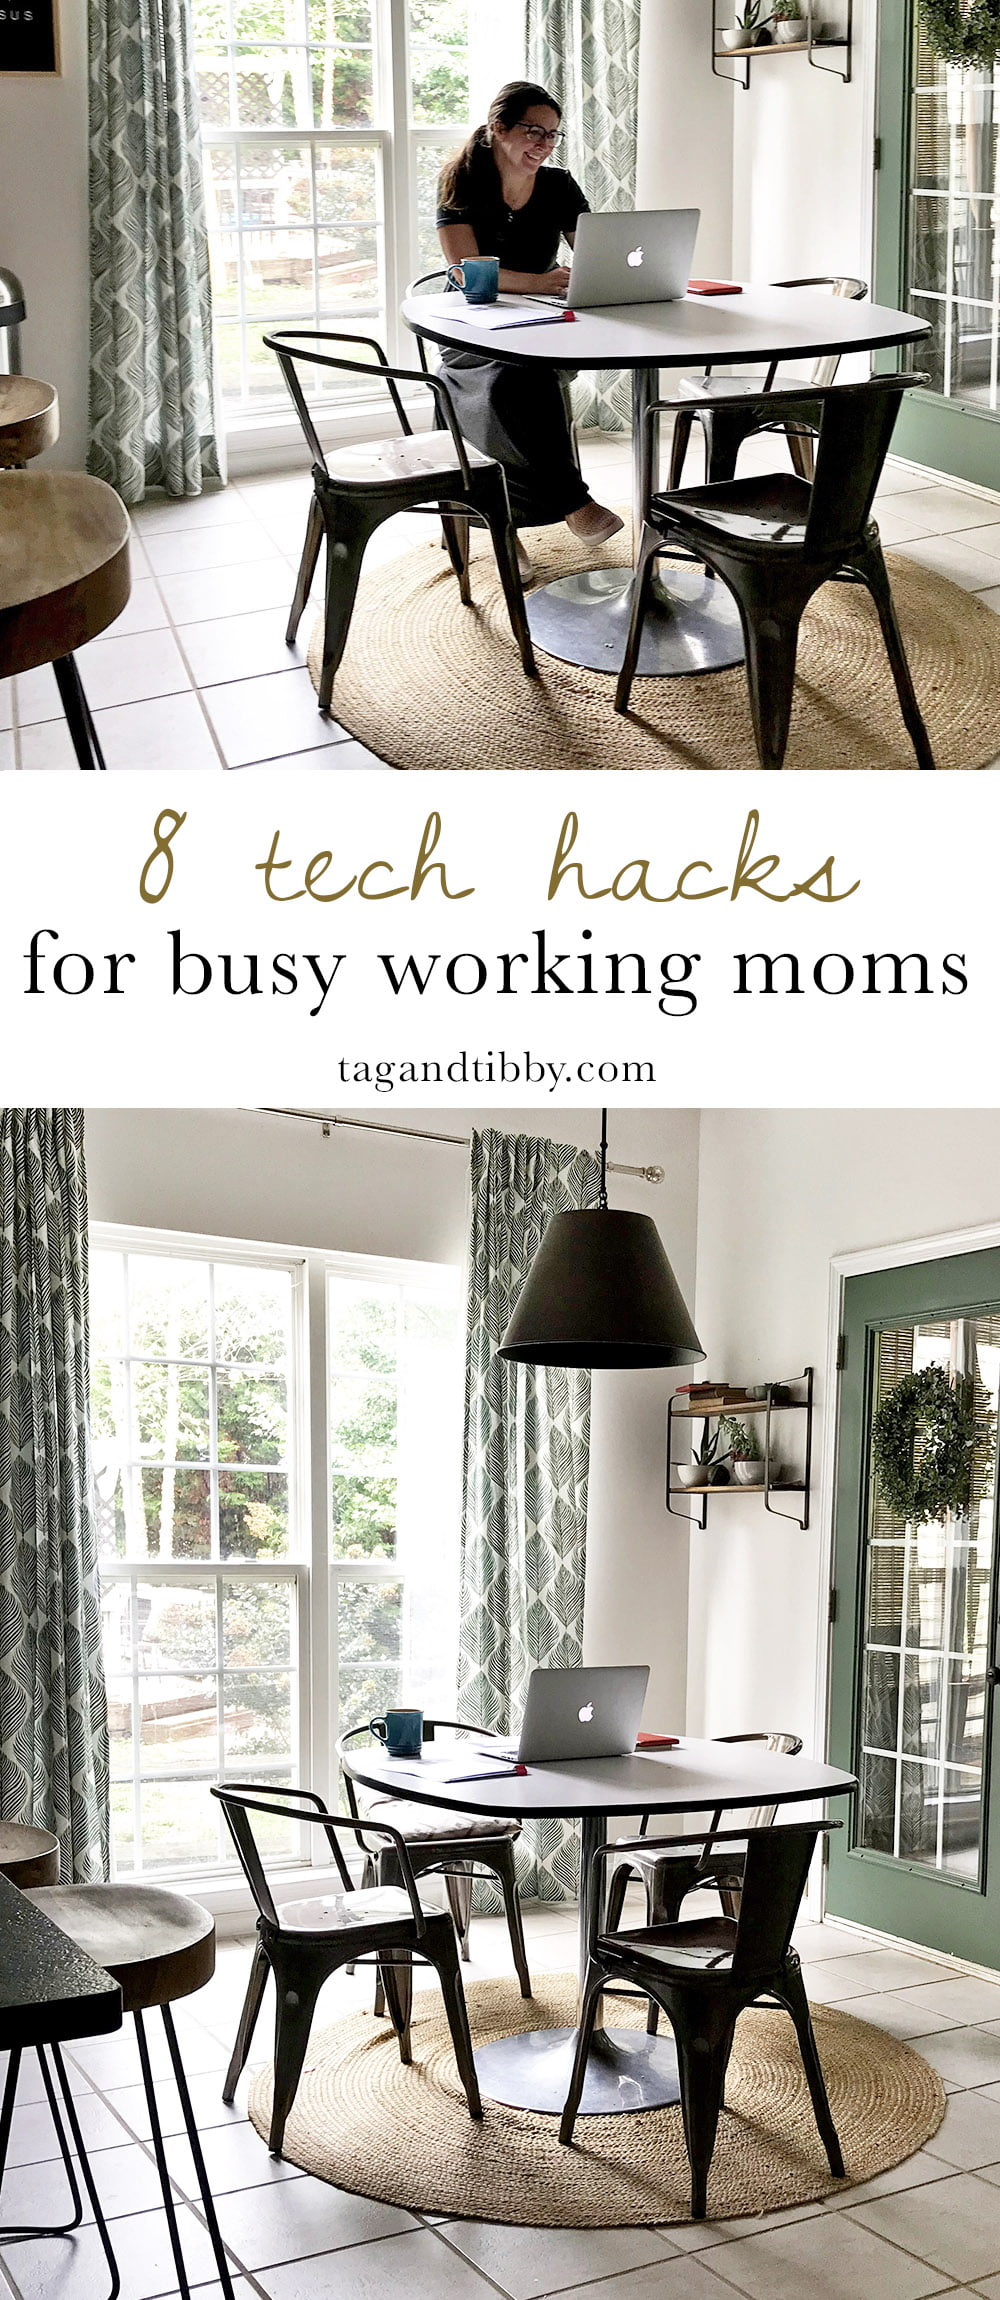 8 Ways Moms can Maximize Their Time with Technology